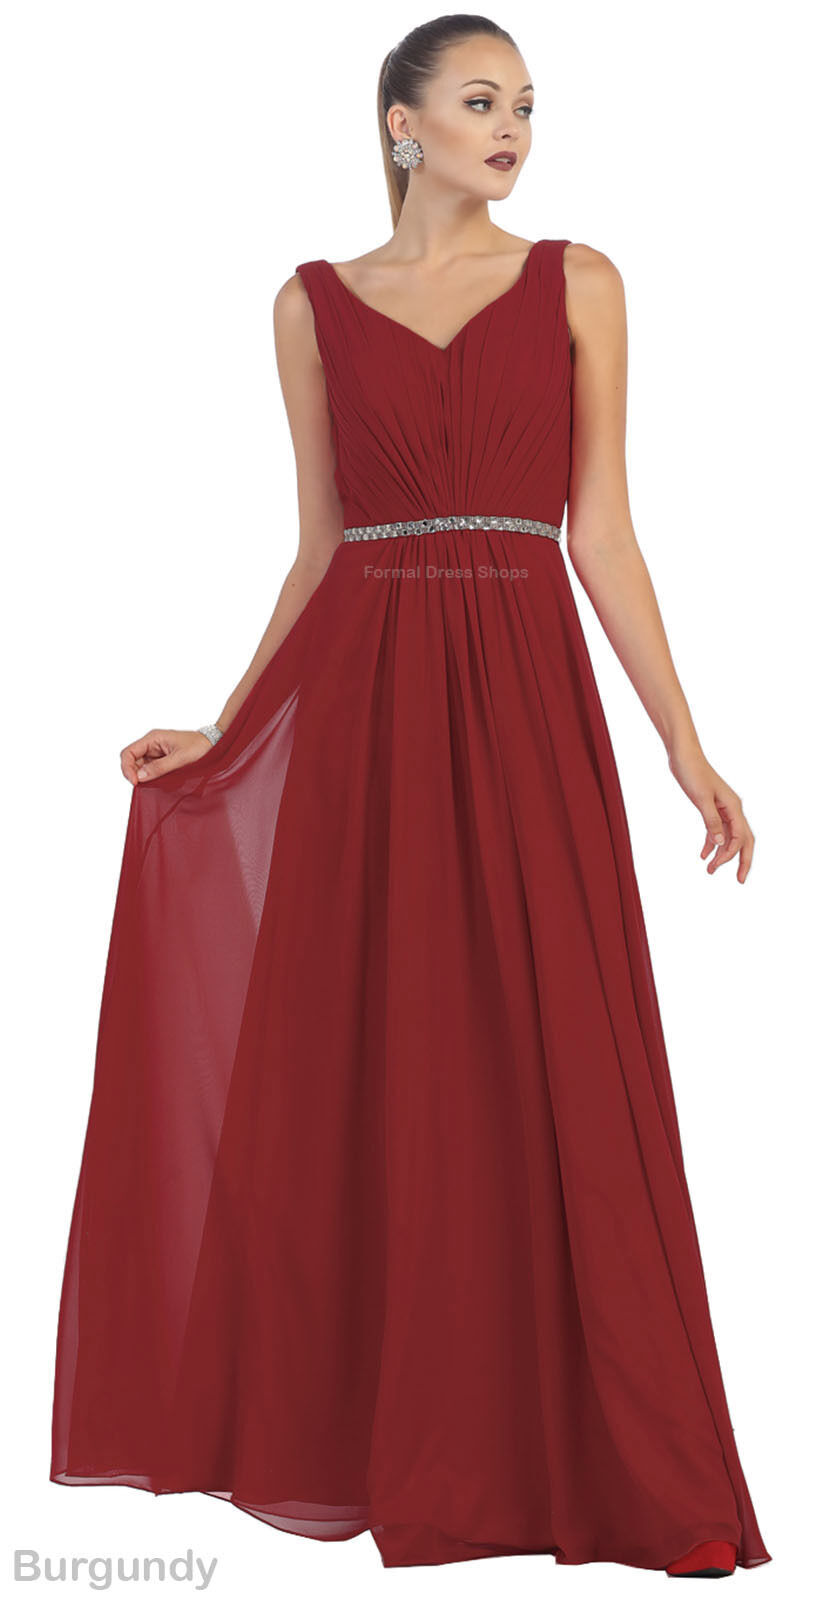 d461d7b0e96 Details about BRIDESMAIDS EVENING FORMAL GOWN SPECIAL OCCASION PROM DANCE  SWEET 16   PLUS SIZE